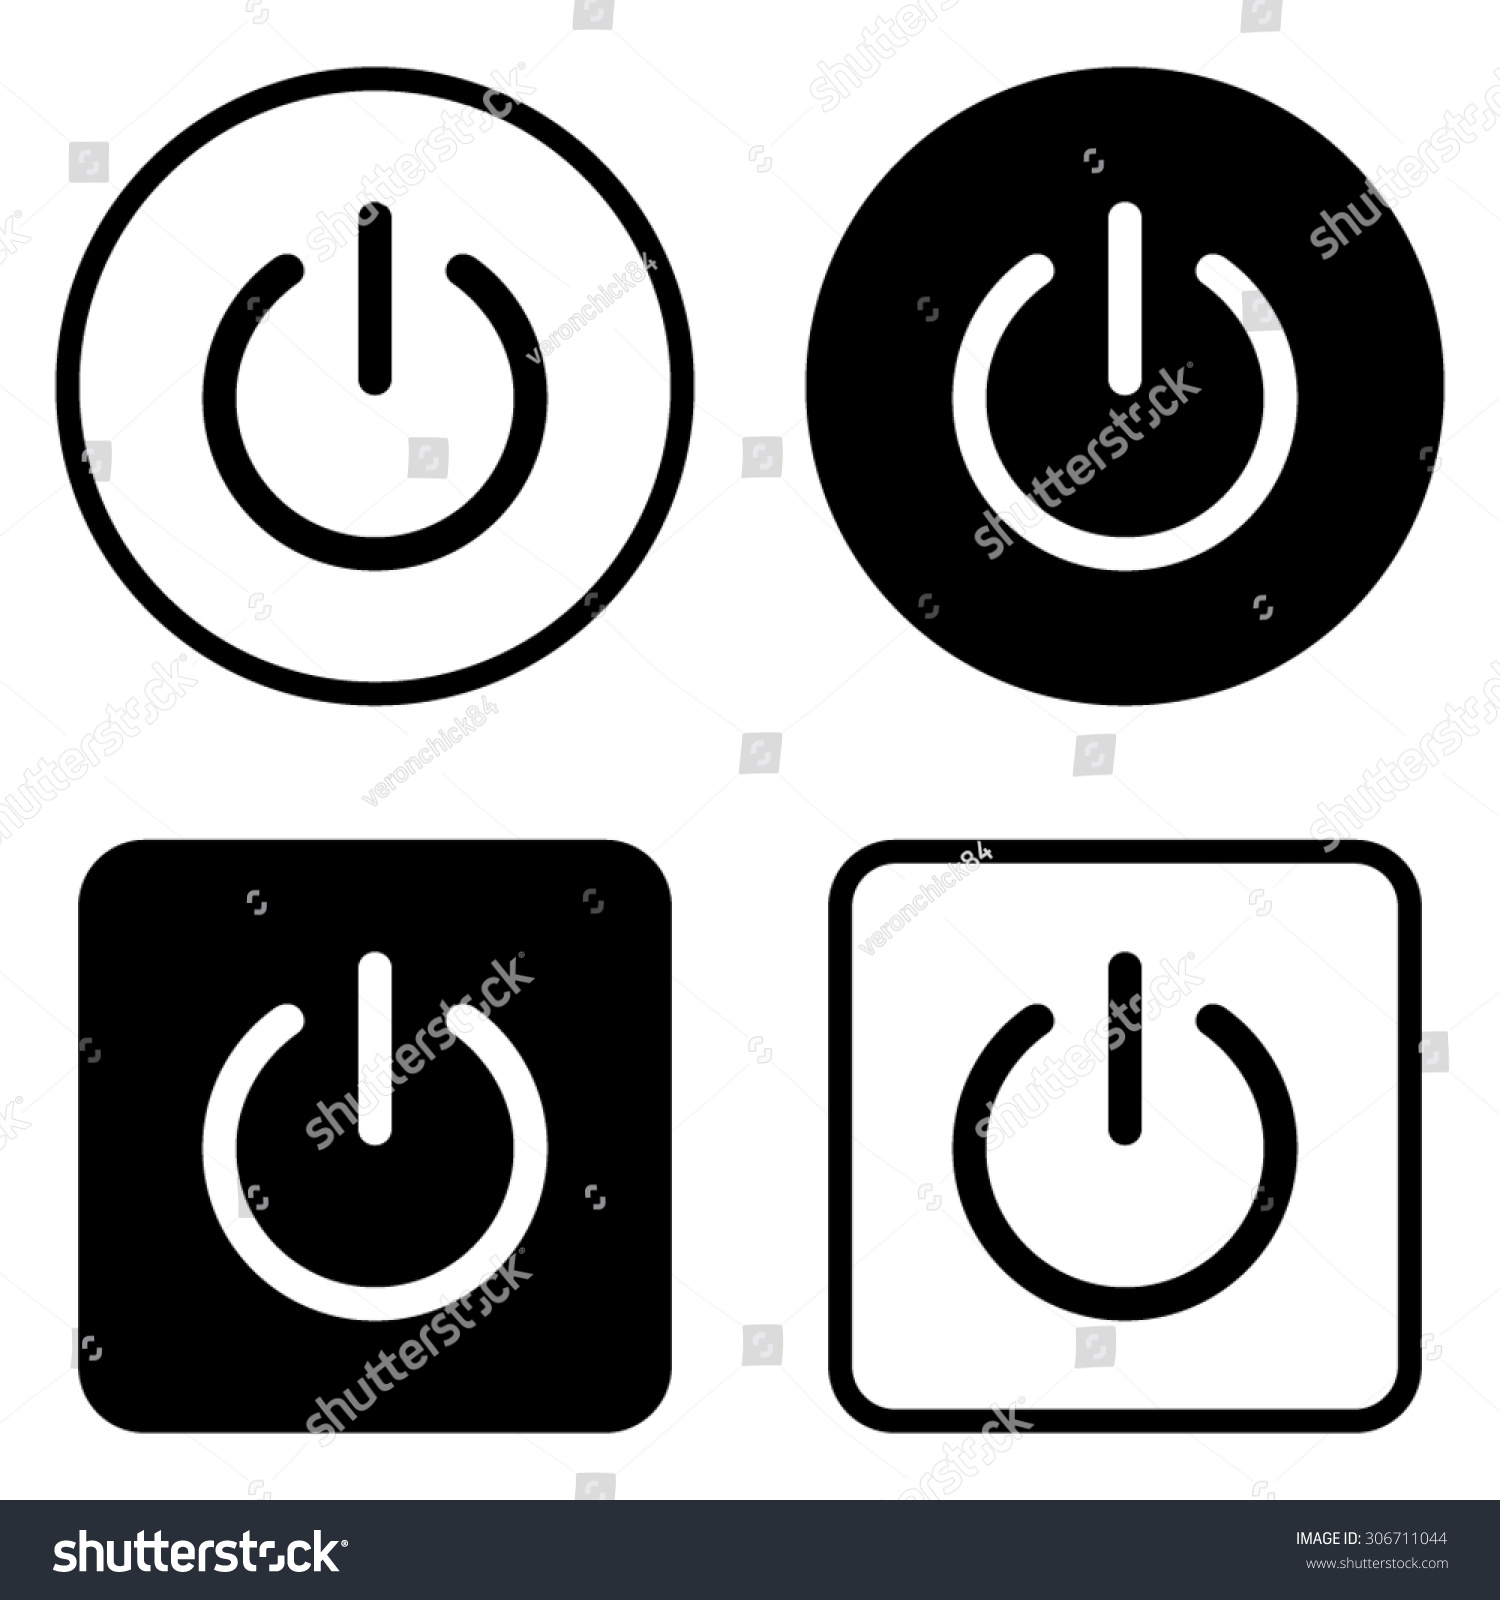 Onoff switch vector icon stock vector 306711044 shutterstock onoff switch vector icon biocorpaavc Images